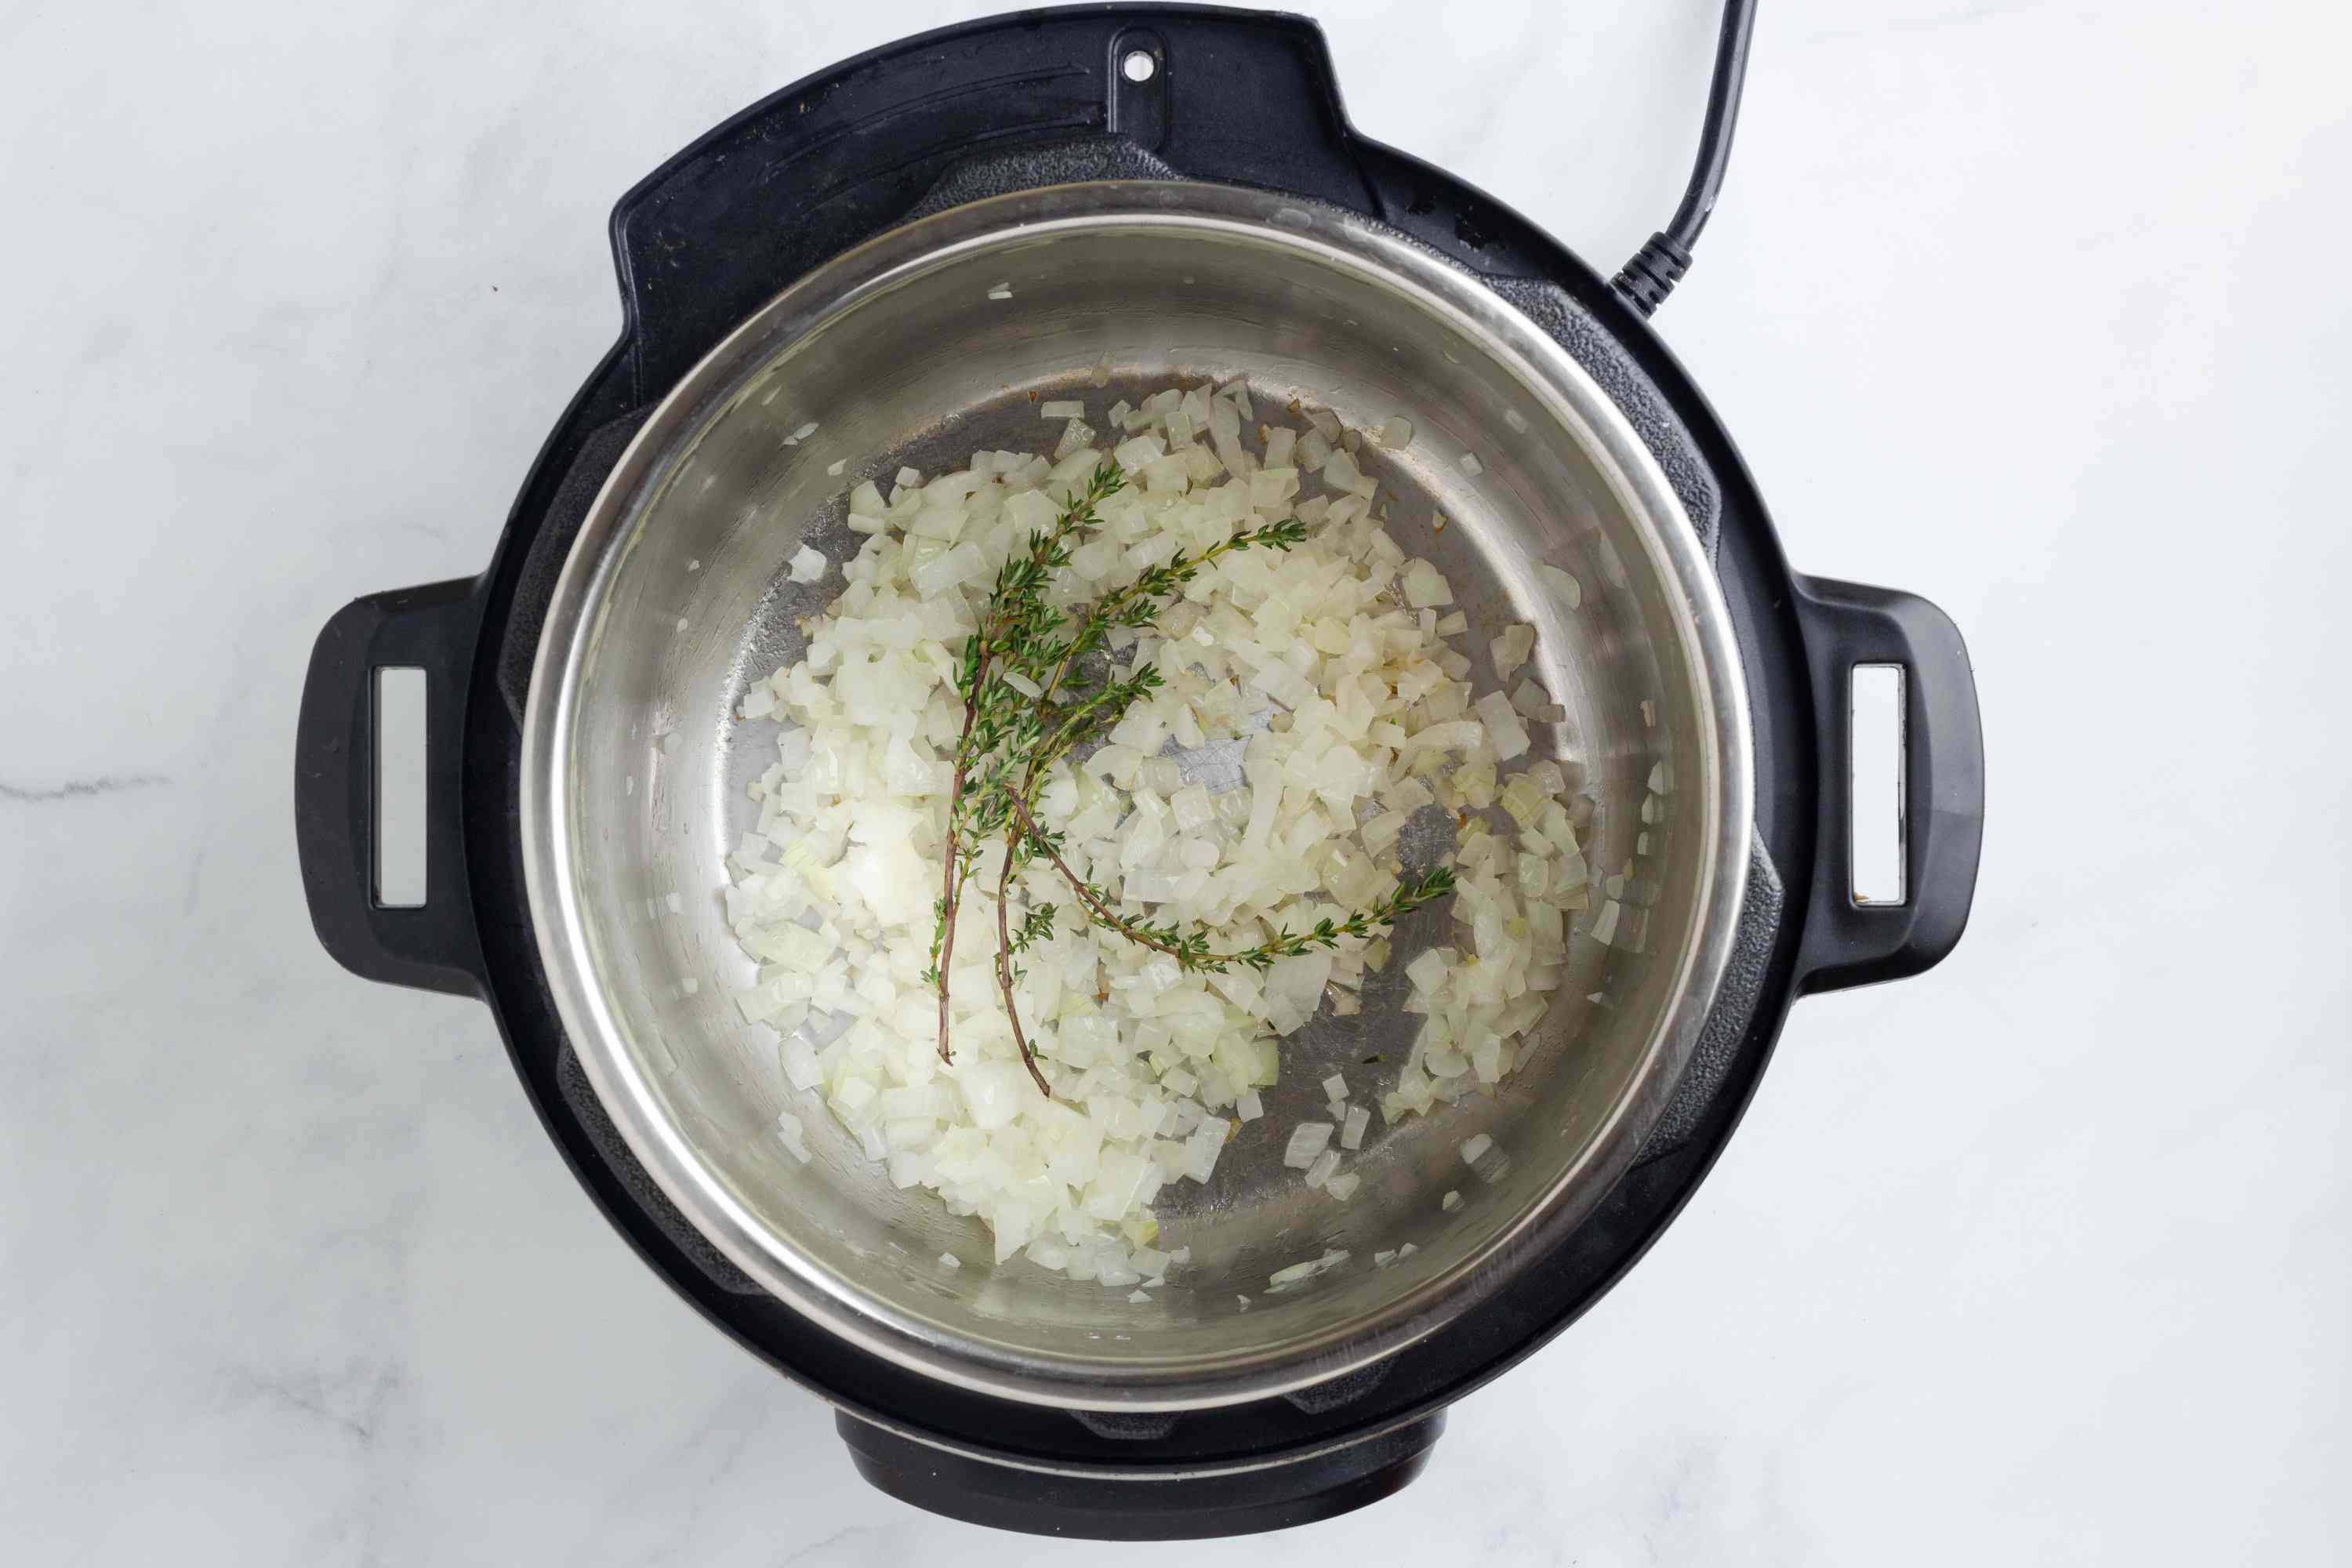 onions and herbs in a pressure cooker